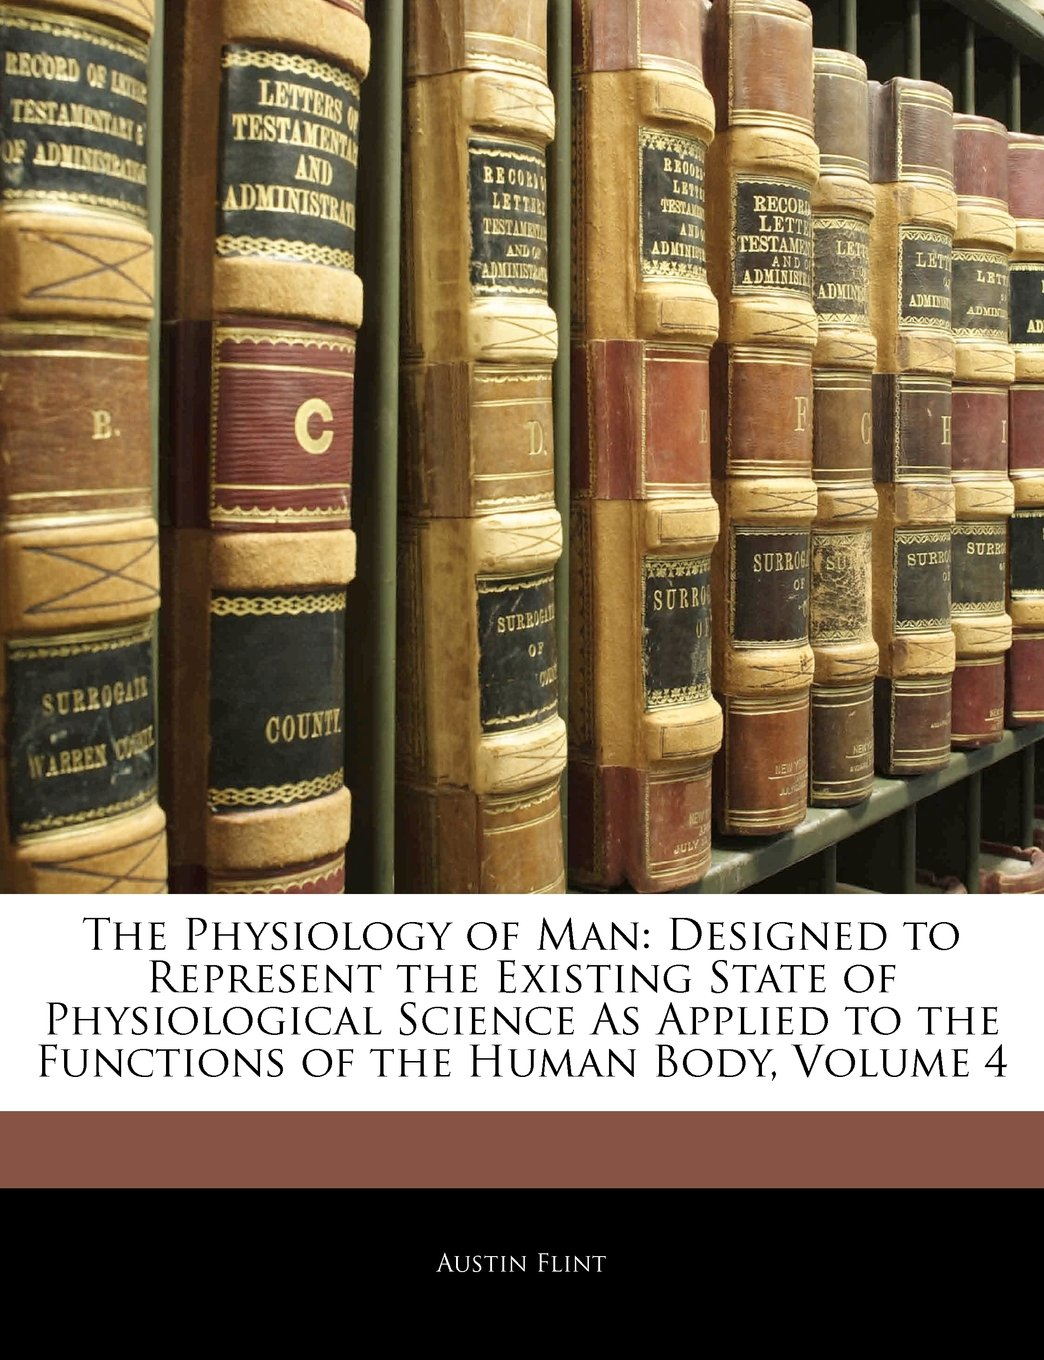 The Physiology of Man: Designed to Represent the Existing State of Physiological Science As Applied to the Functions of the Human Body, Volume 4 PDF